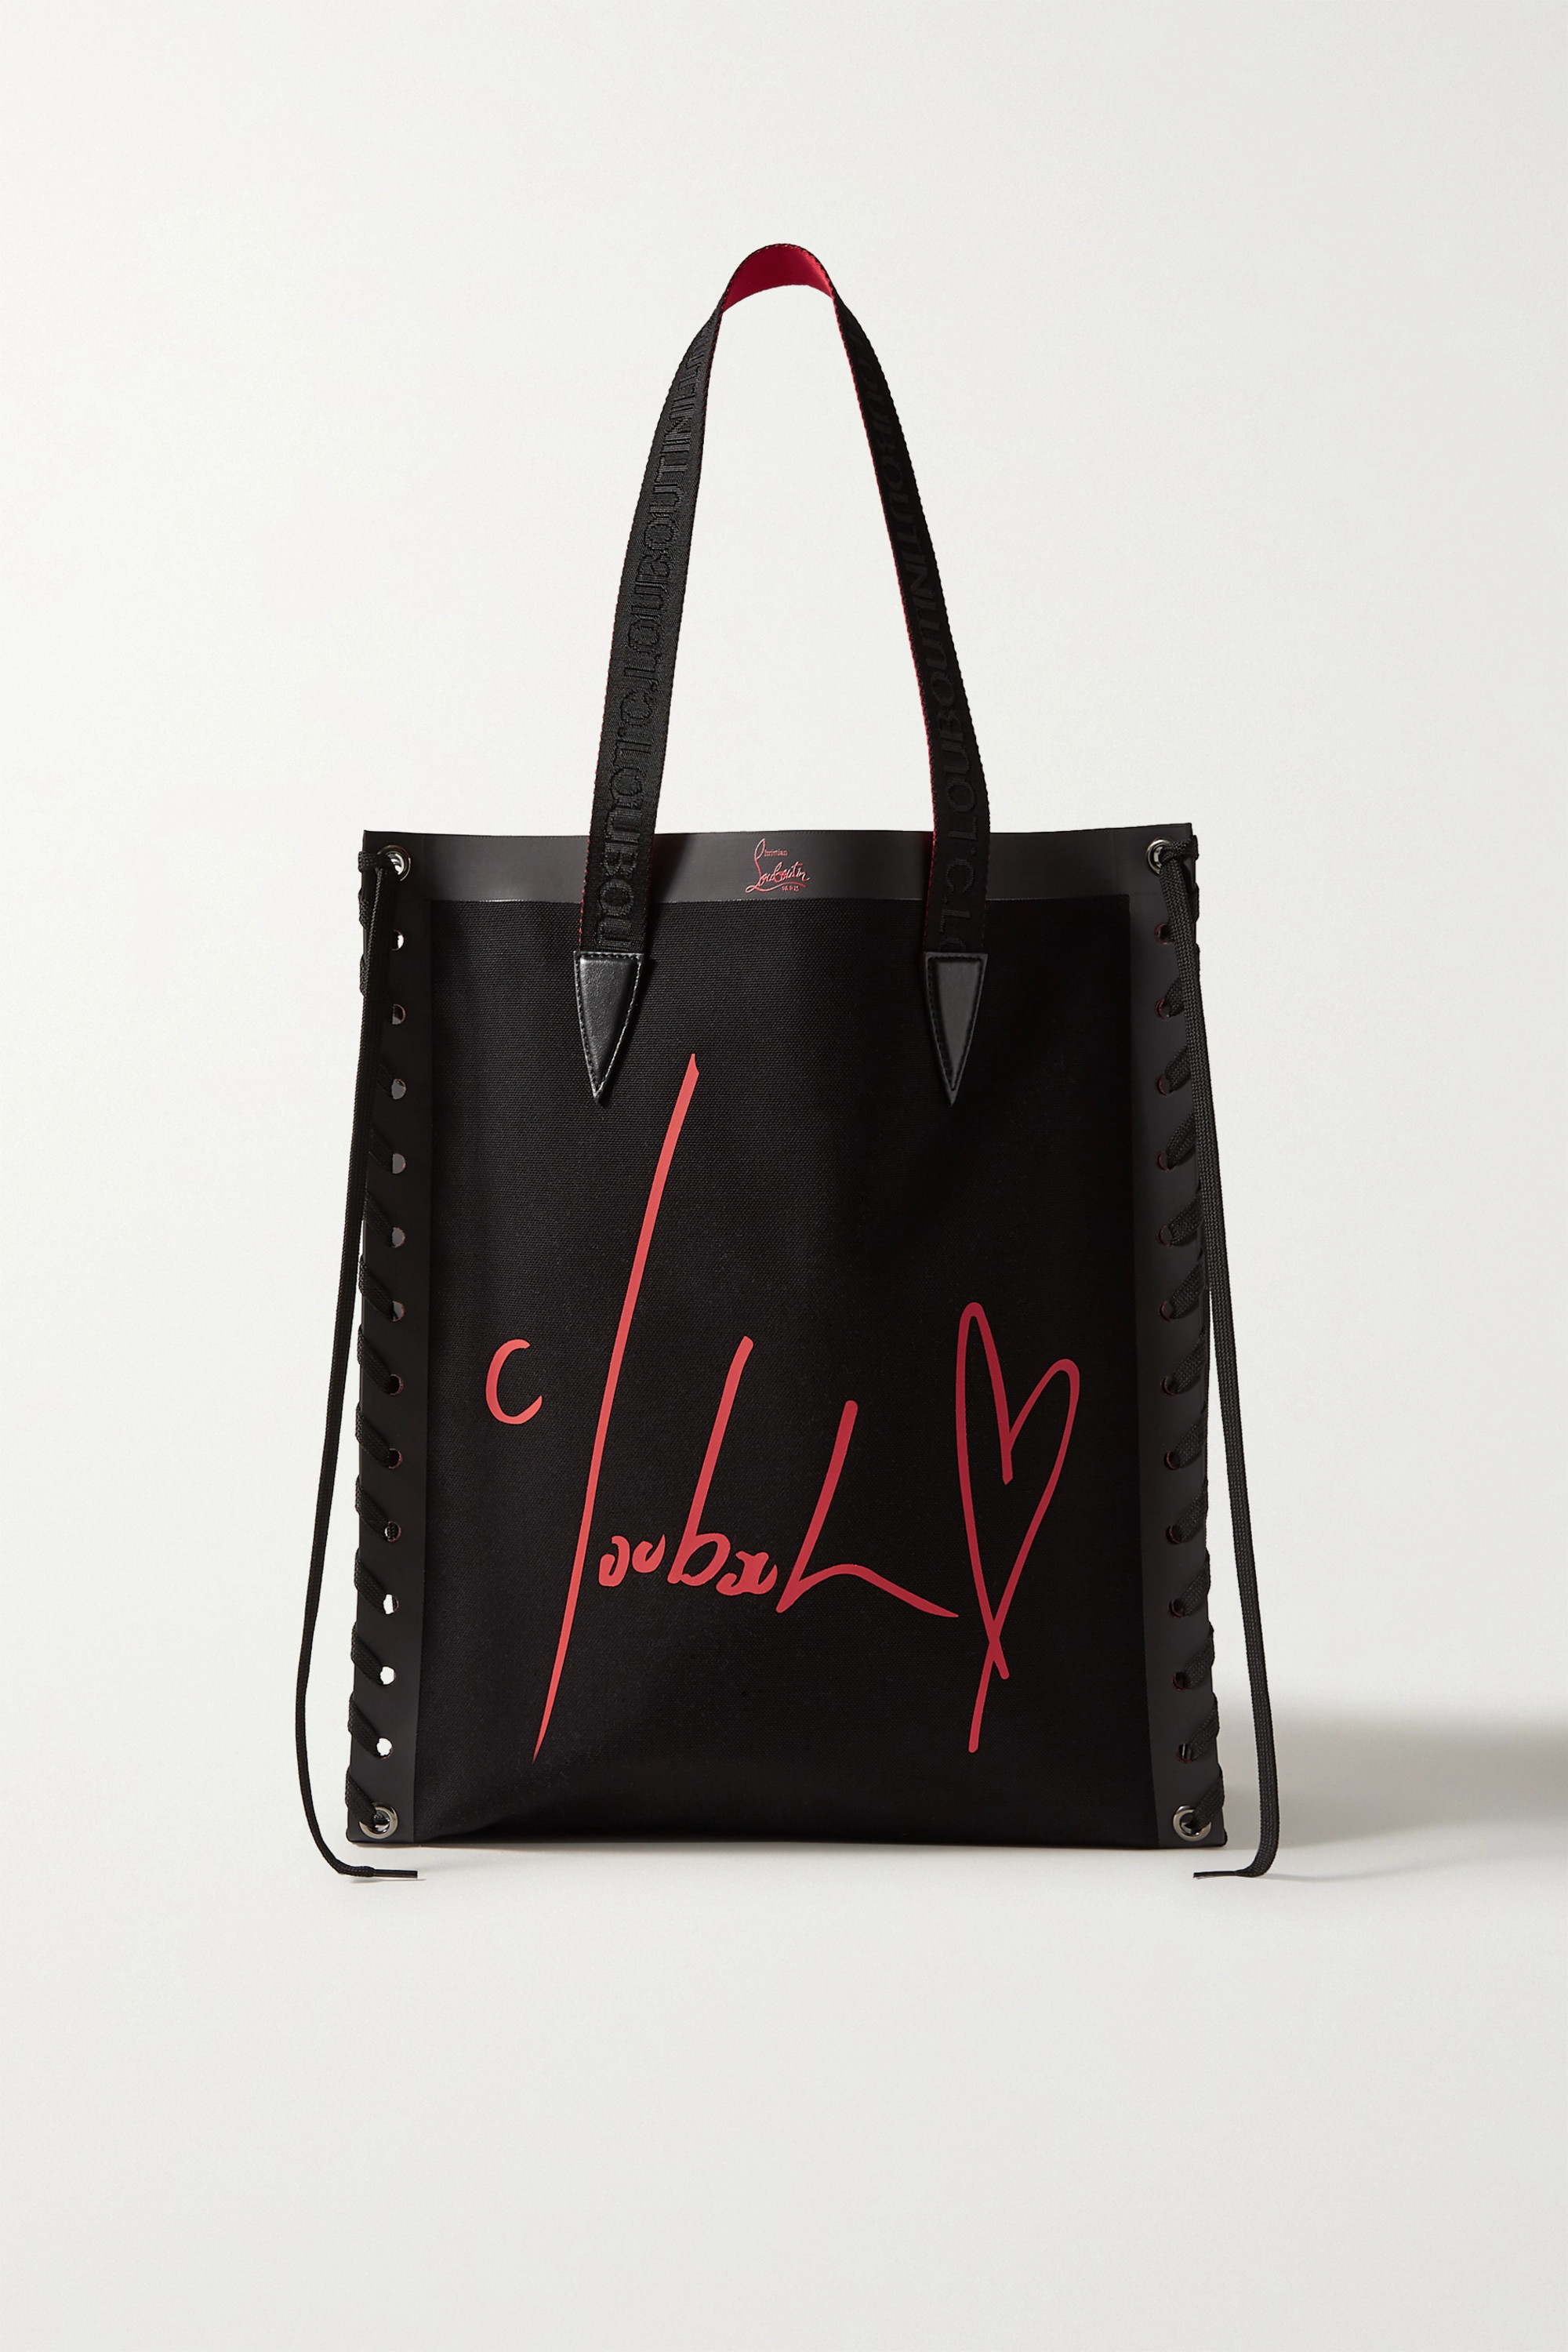 Christian Louboutin Cabalace lace-up leather-trimmed printed canvas tote